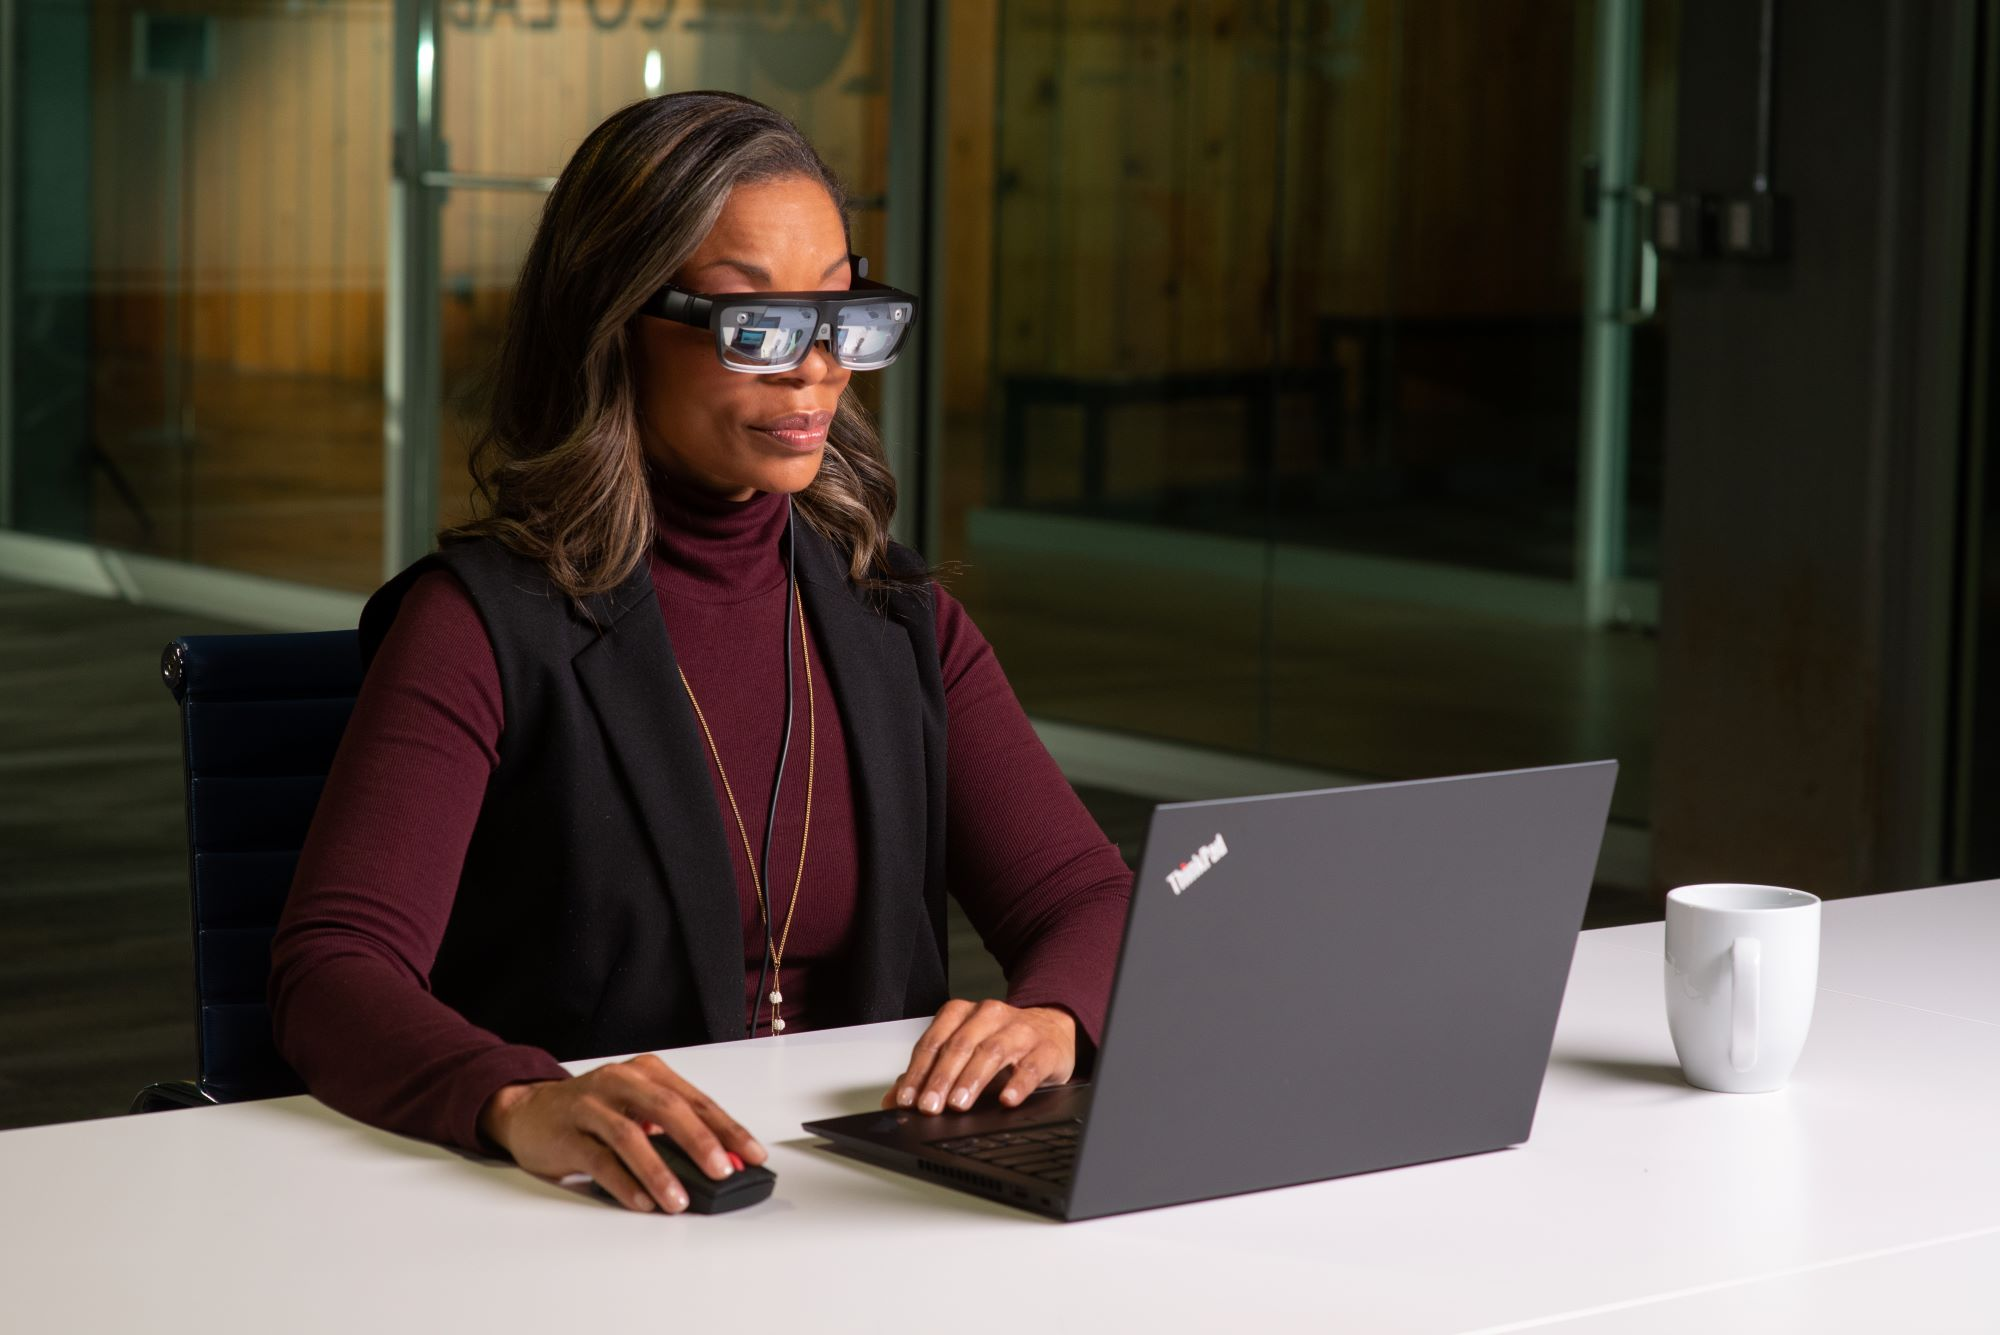 Woman wearing ThinkReality A3 glasses sitting in front of a Lenovo laptop